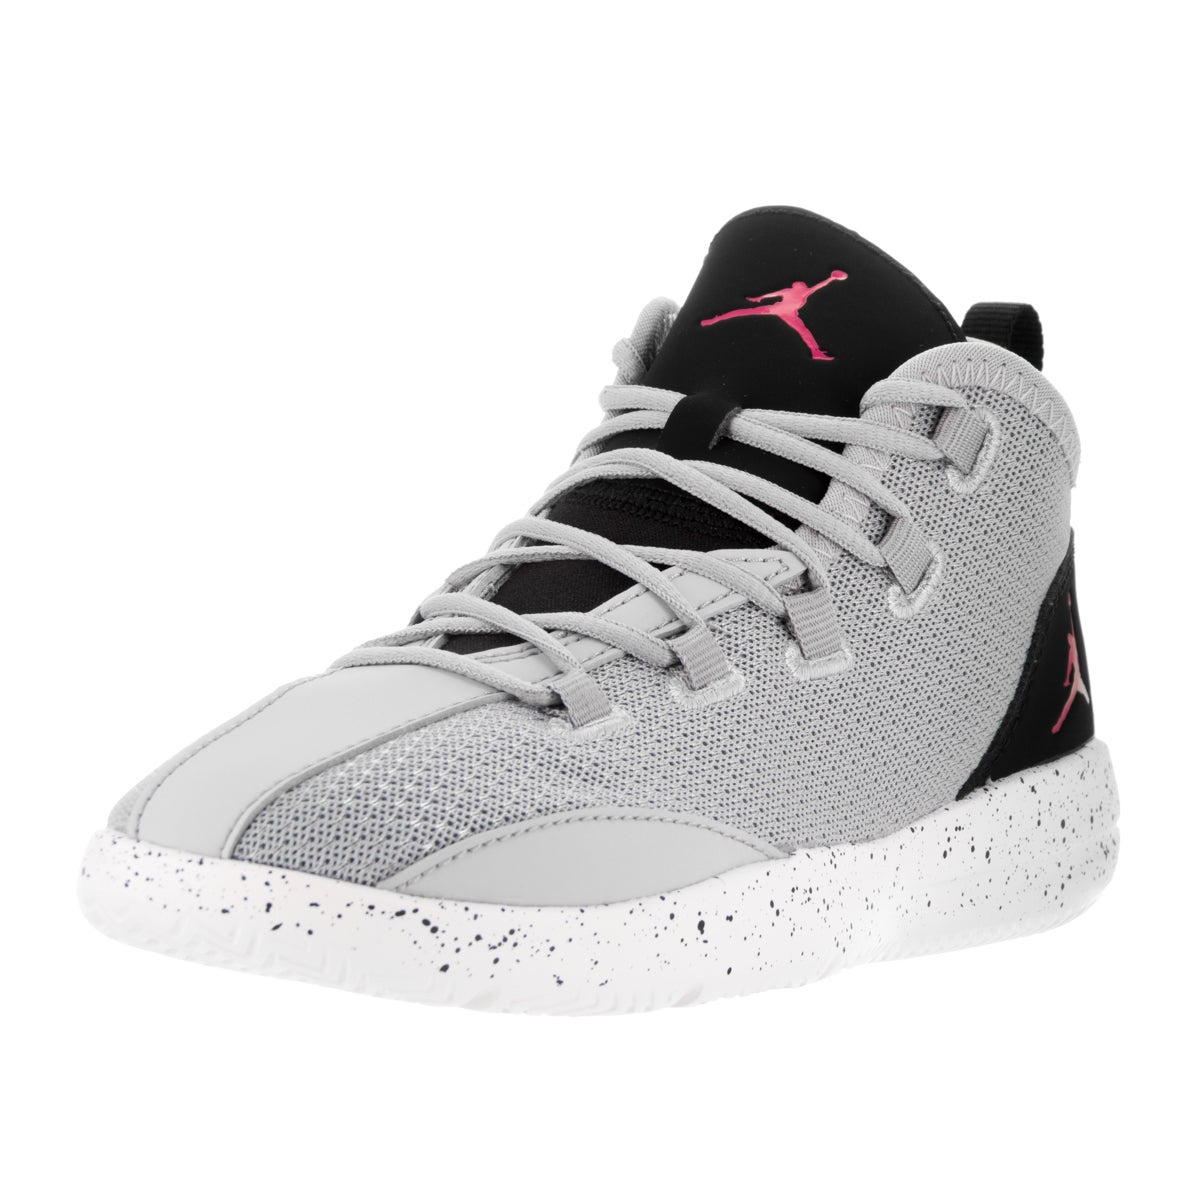 hot sales 7494c a2daf Shop Nike Jordan Kids  Jordan Reveal Wolf Grey, Vivid Pink, Black, and  White Basketball Shoes - Free Shipping Today - Overstock - 13394456